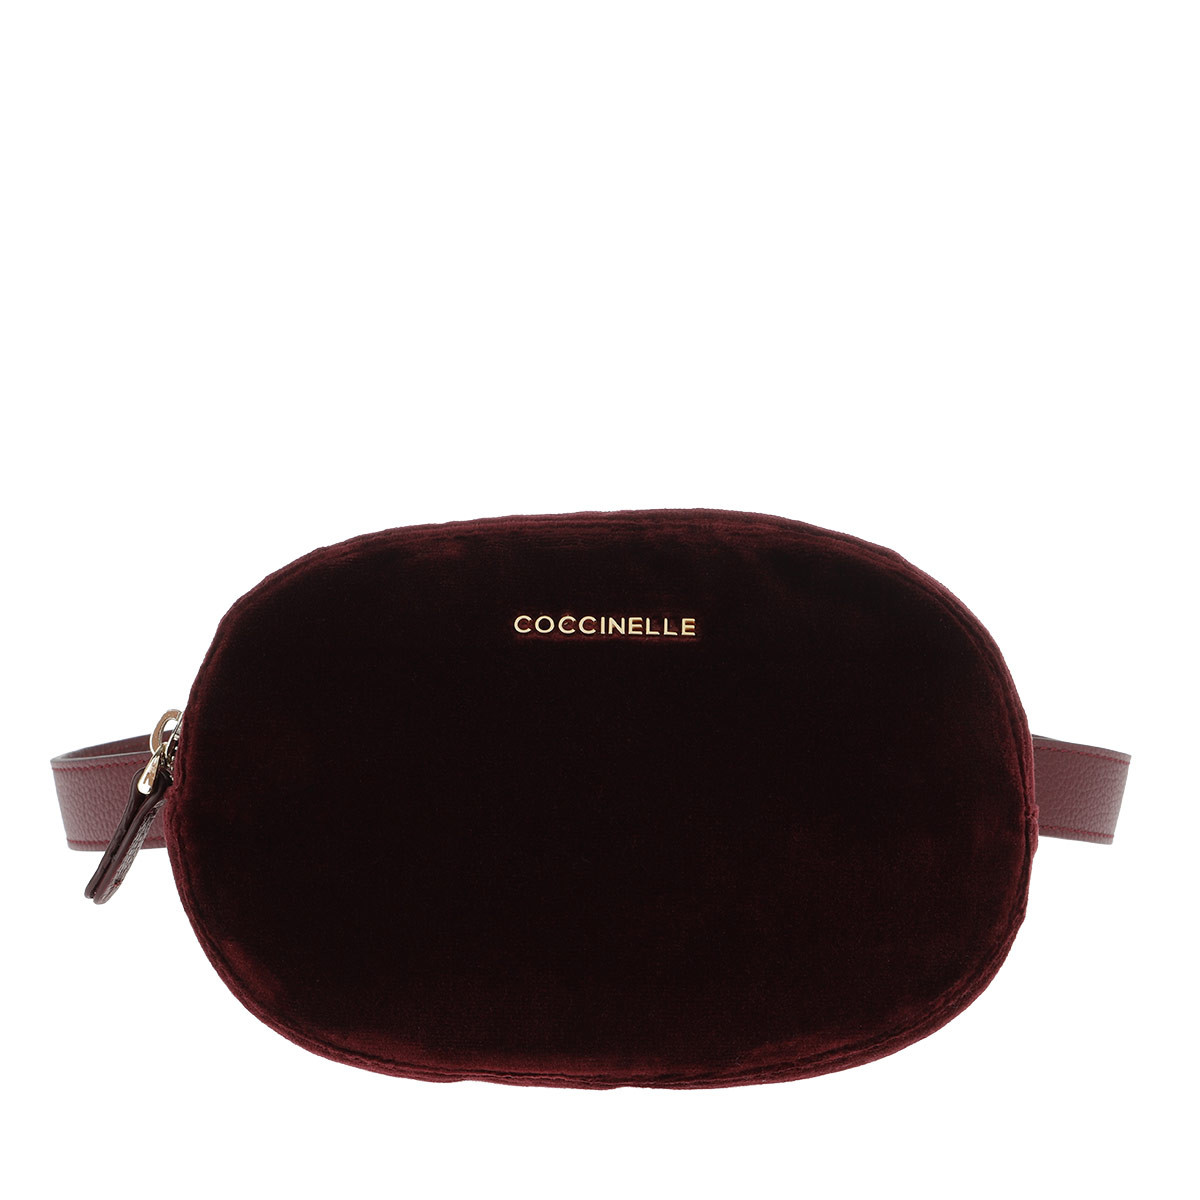 Coccinelle Gürteltasche - Mini Belt Bag Grape - in rot - für Damen